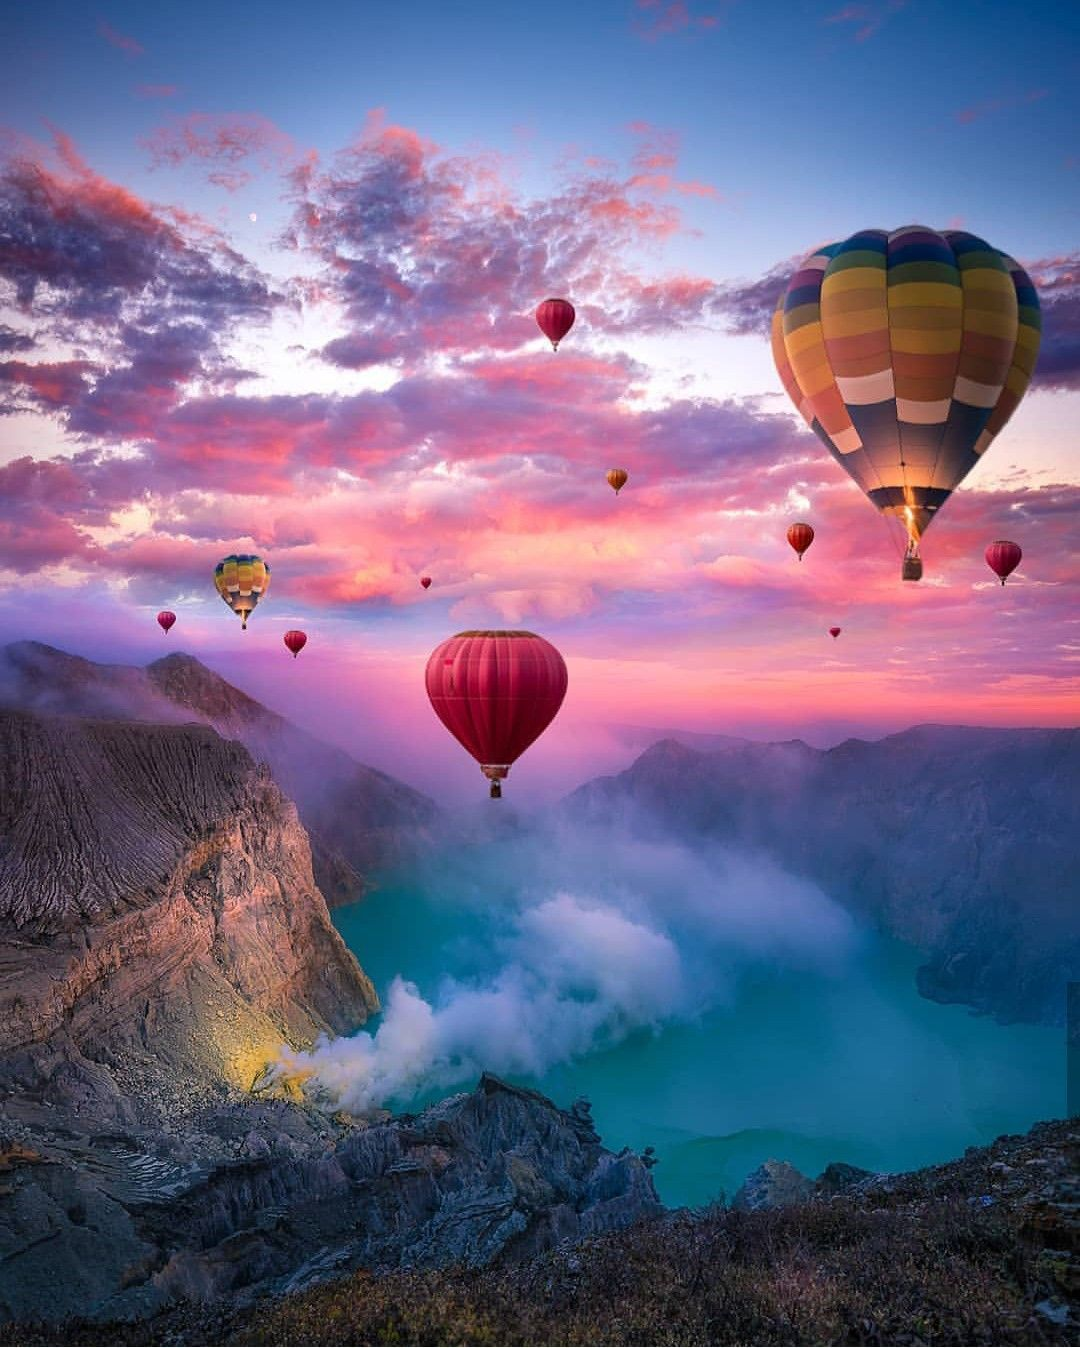 Pin by Pamela Lowrance on OWOW Balloons photography, Hot